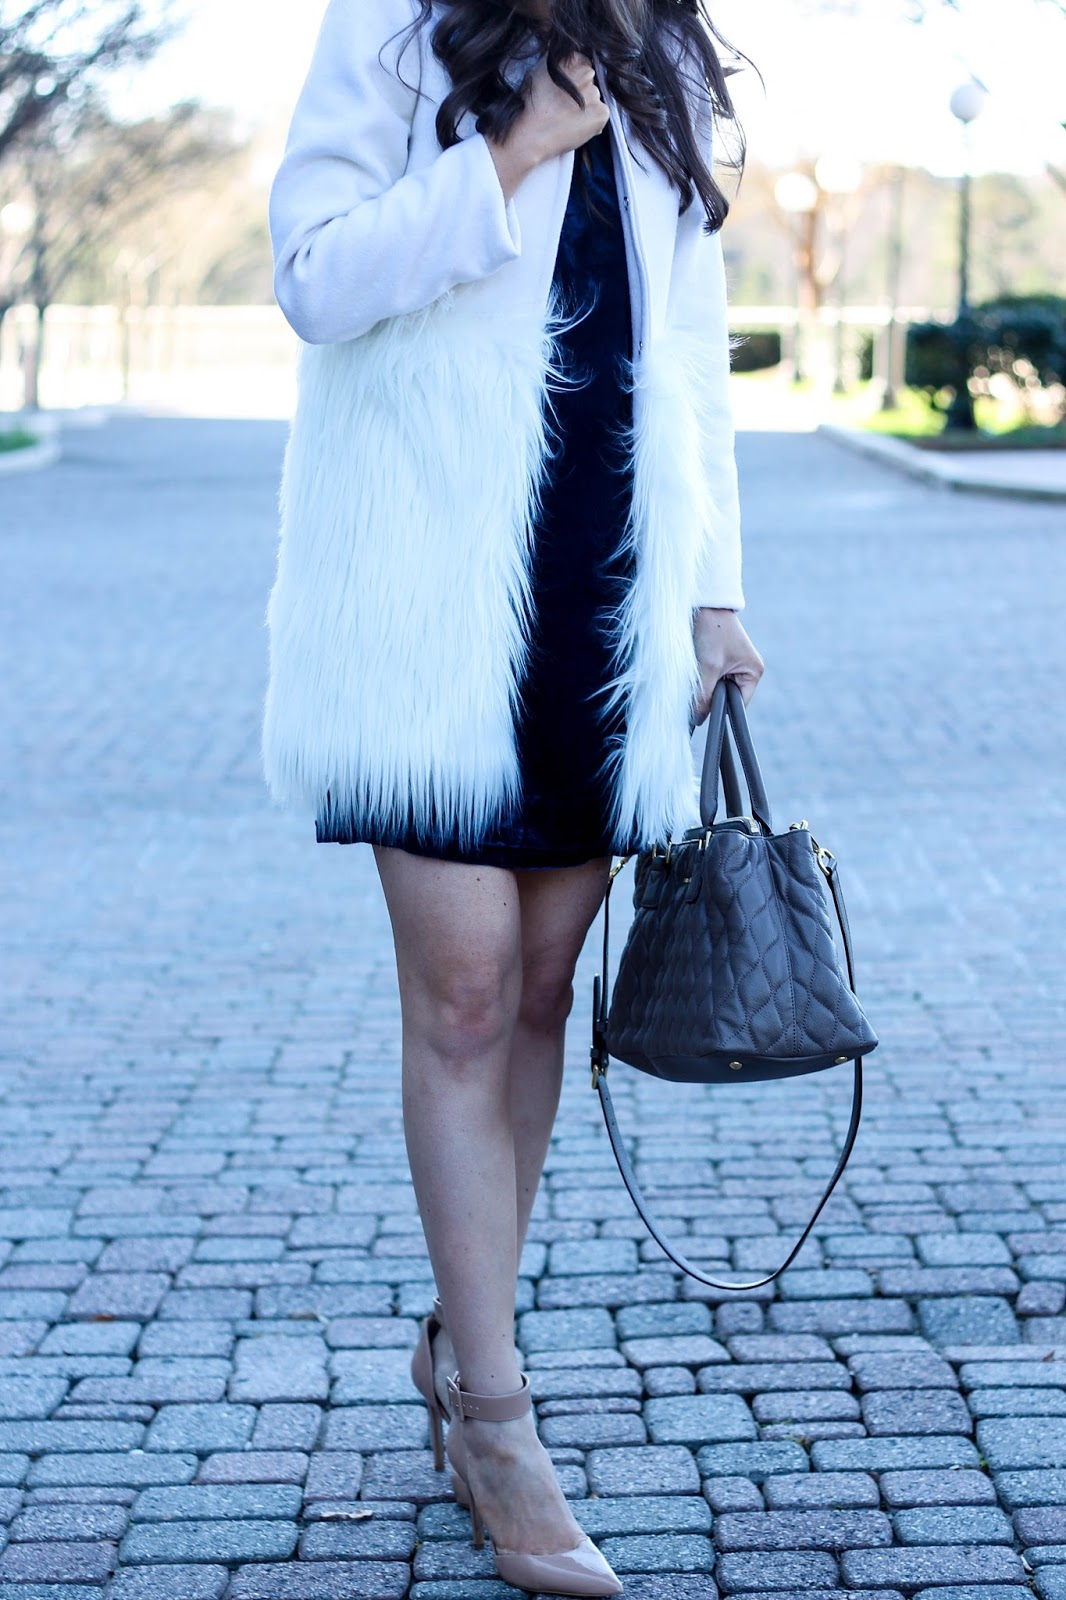 Velvet Navy Shift Dress, Velvet Dress, Blue velvet, White Faux Fur Coat, Chicwish White Faux Fur Coat, Fashion Blogger, Winter Style, Winter Trends, Pretty in the Pines, Cute Winter Outfit Idea, Nude Ankle Strap Pumps